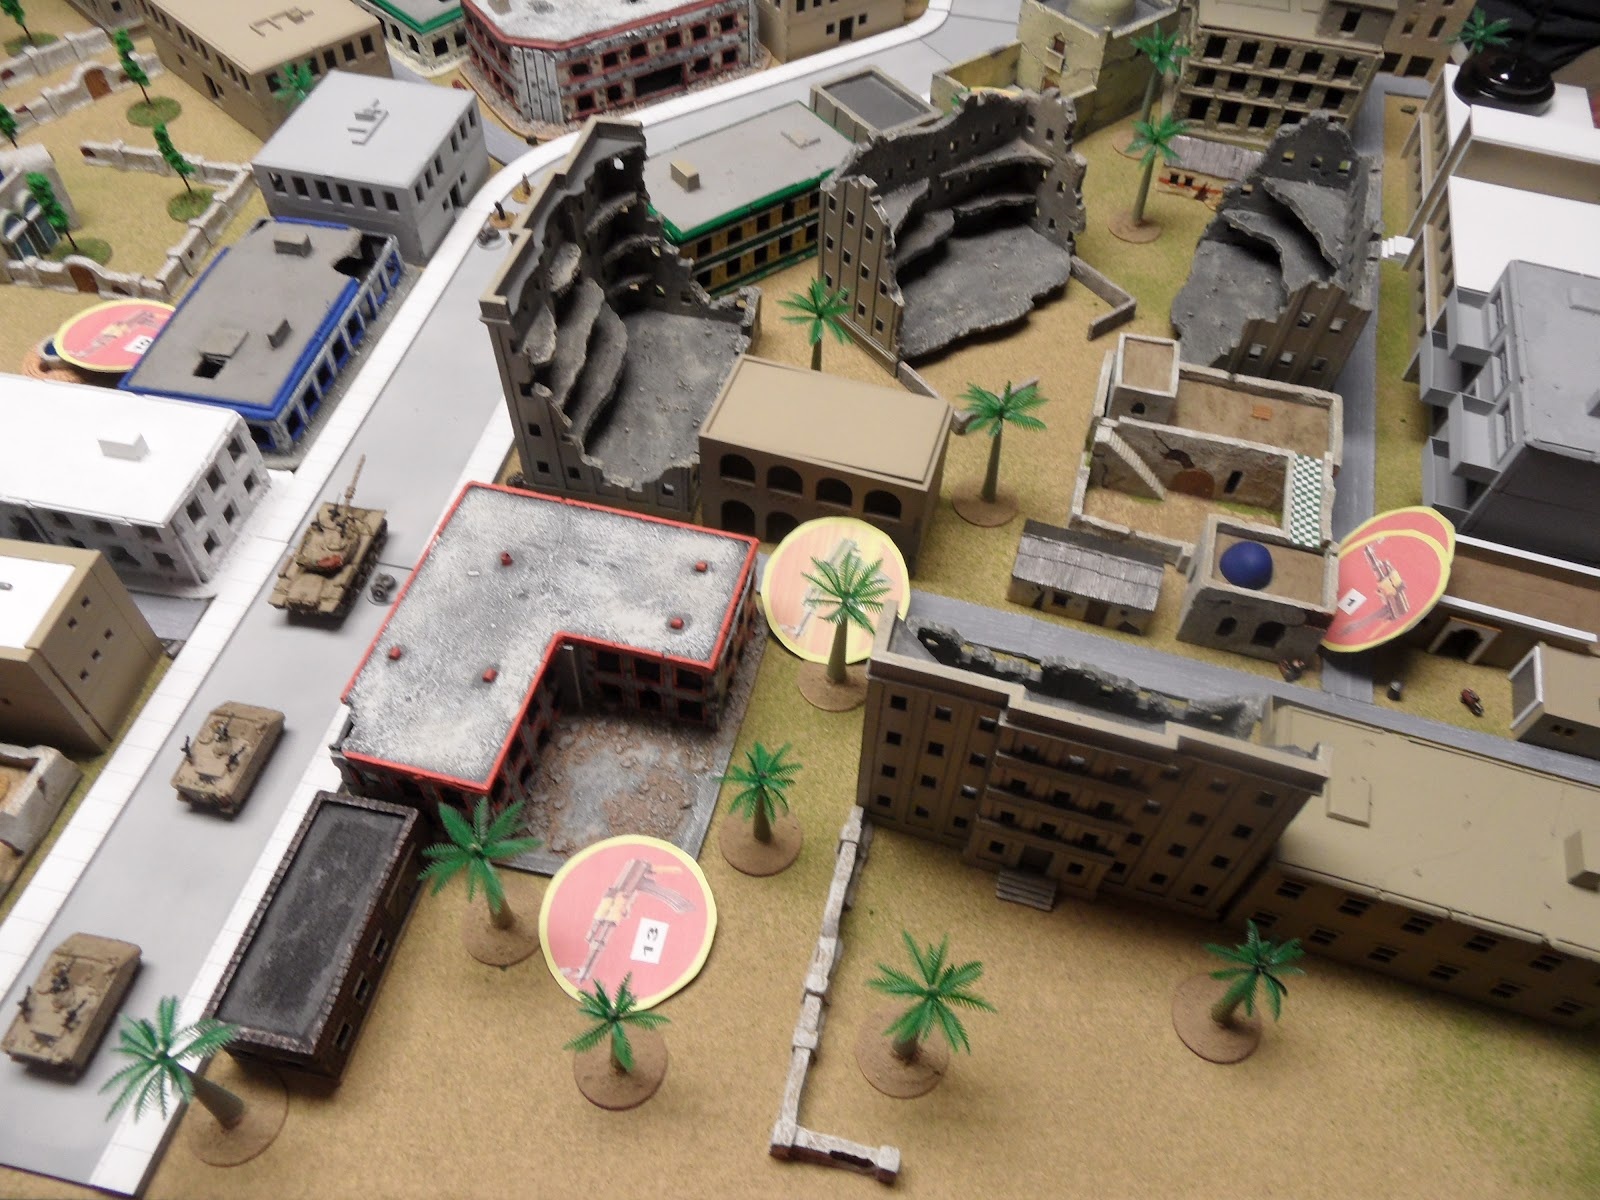 PLA blinds manoeuvre in the back-alleys of the camp.